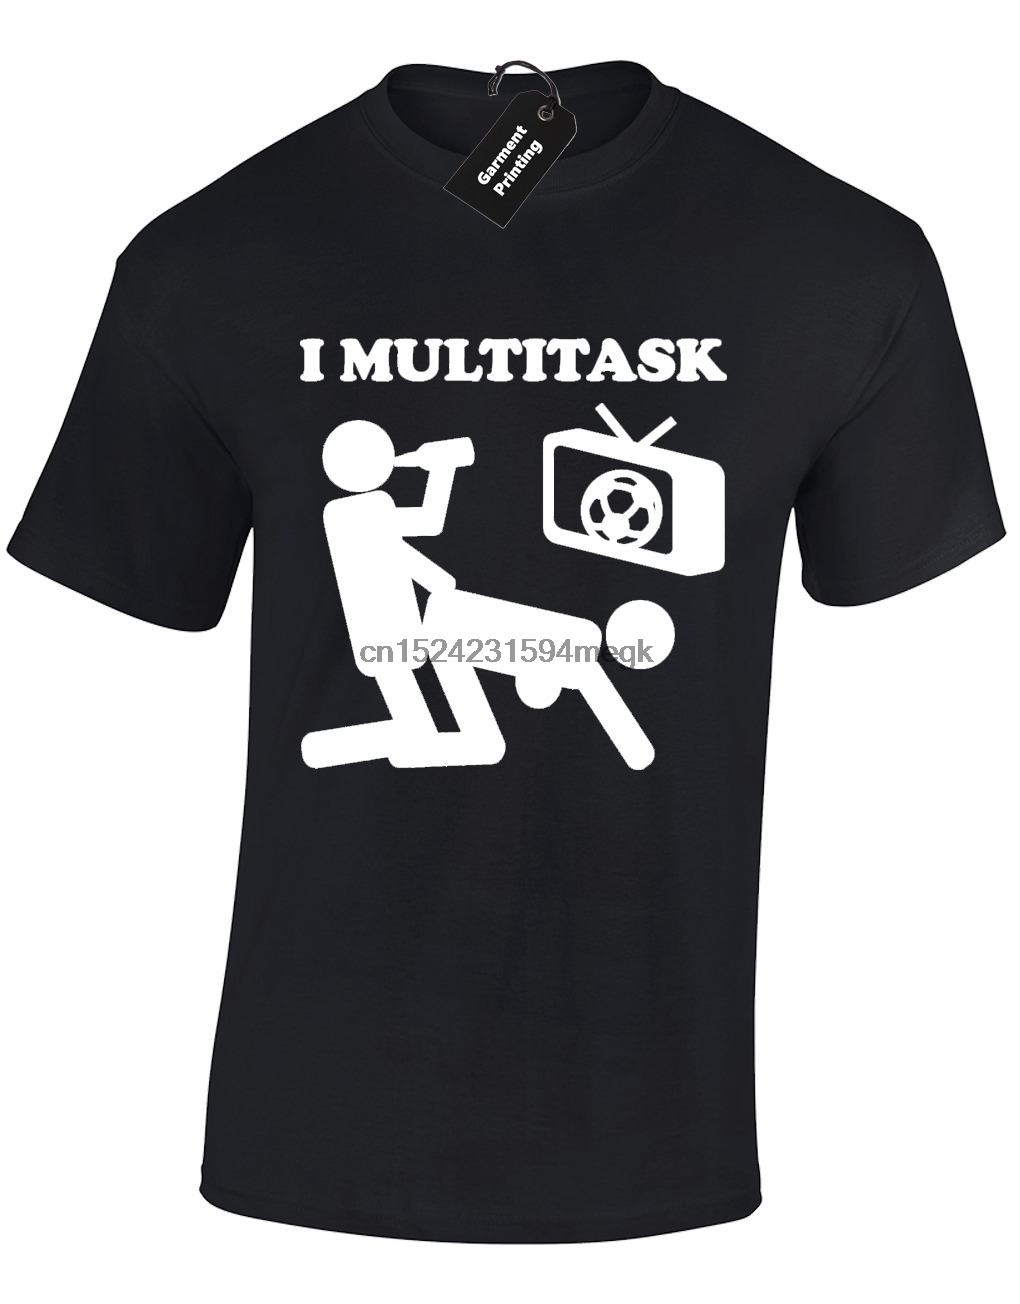 I MULTITASK MENS T SHIRT FUNNY RUDE FOOTBALL TV BEER DESIGN SOCCER AM JOKE S-5XL